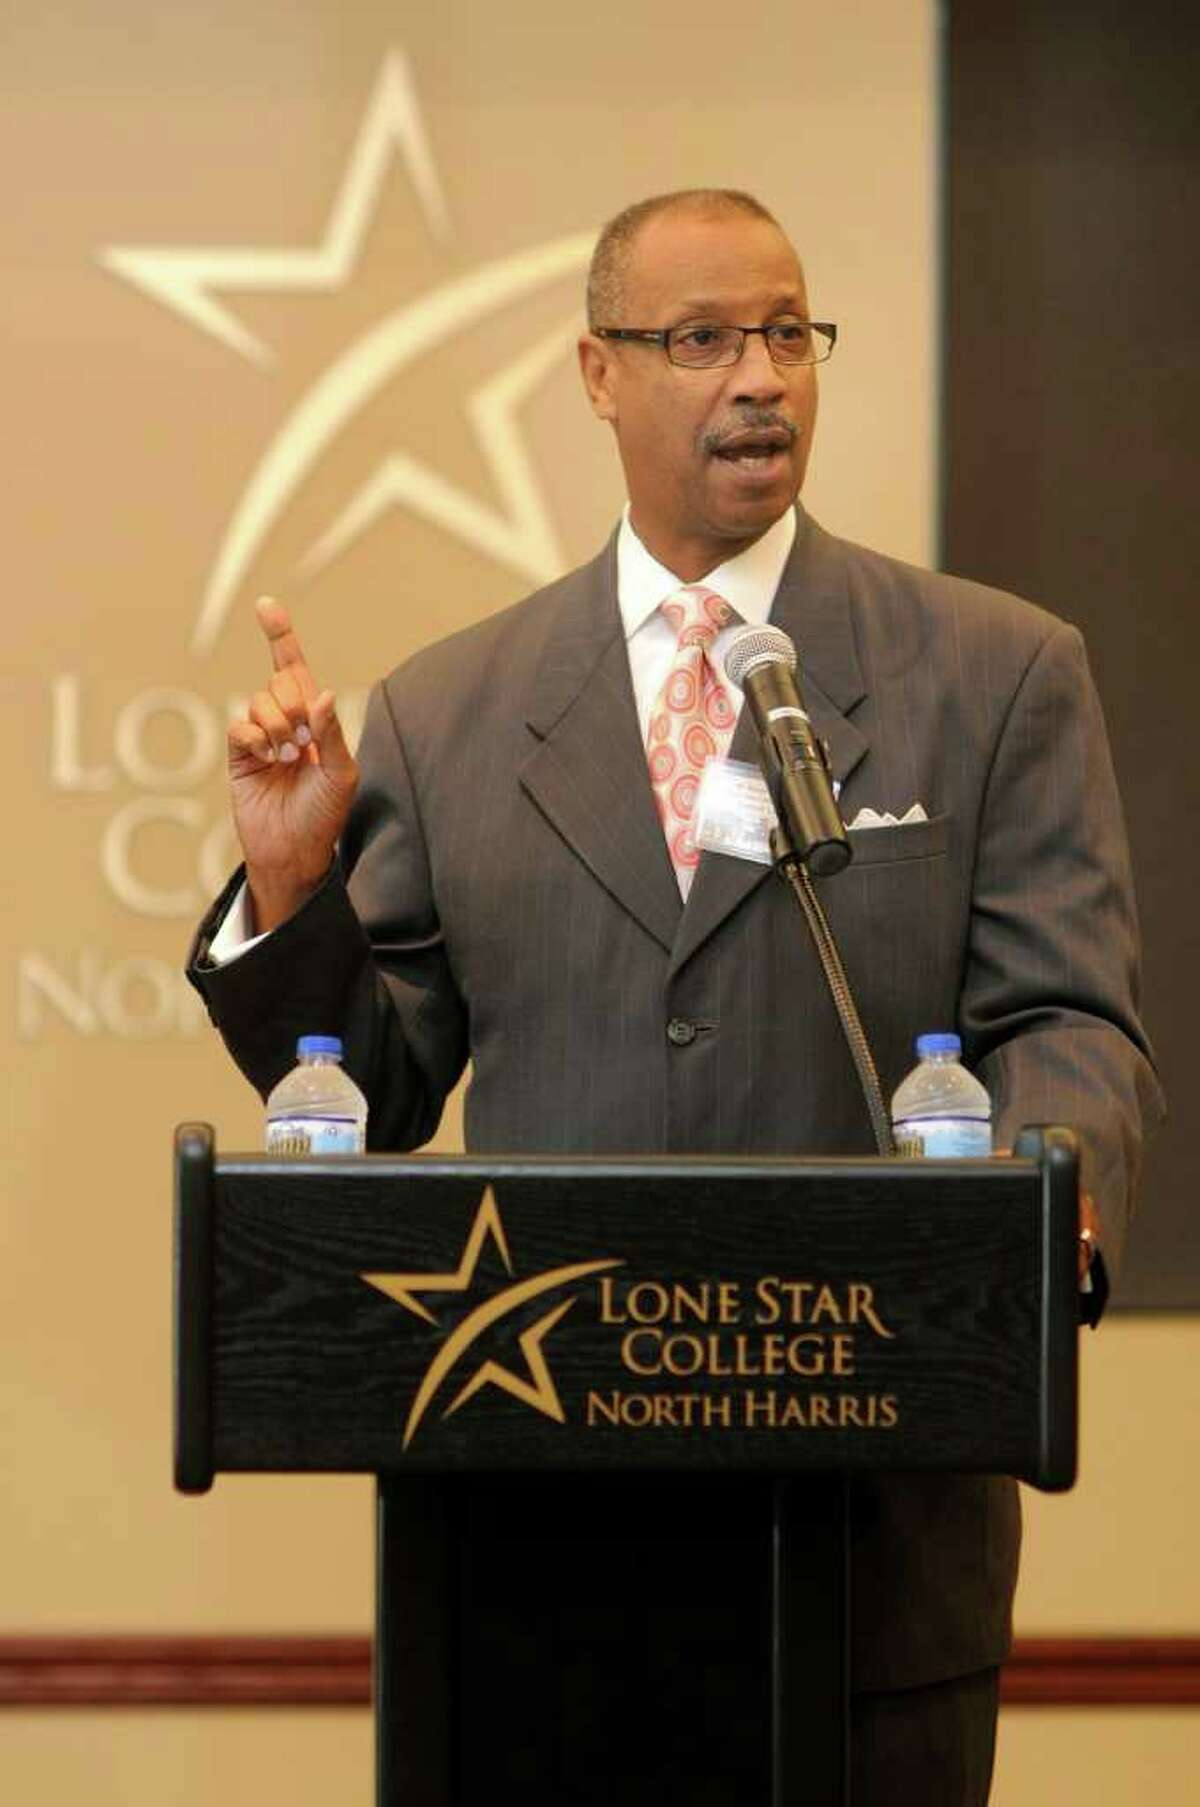 Randy Bates, Chair, LSCS Board of Trustees, makes his remarks during the opening ceremony for the Lone Star College - North Harris new Student Services Building. Freelance photo by Jerry Baker